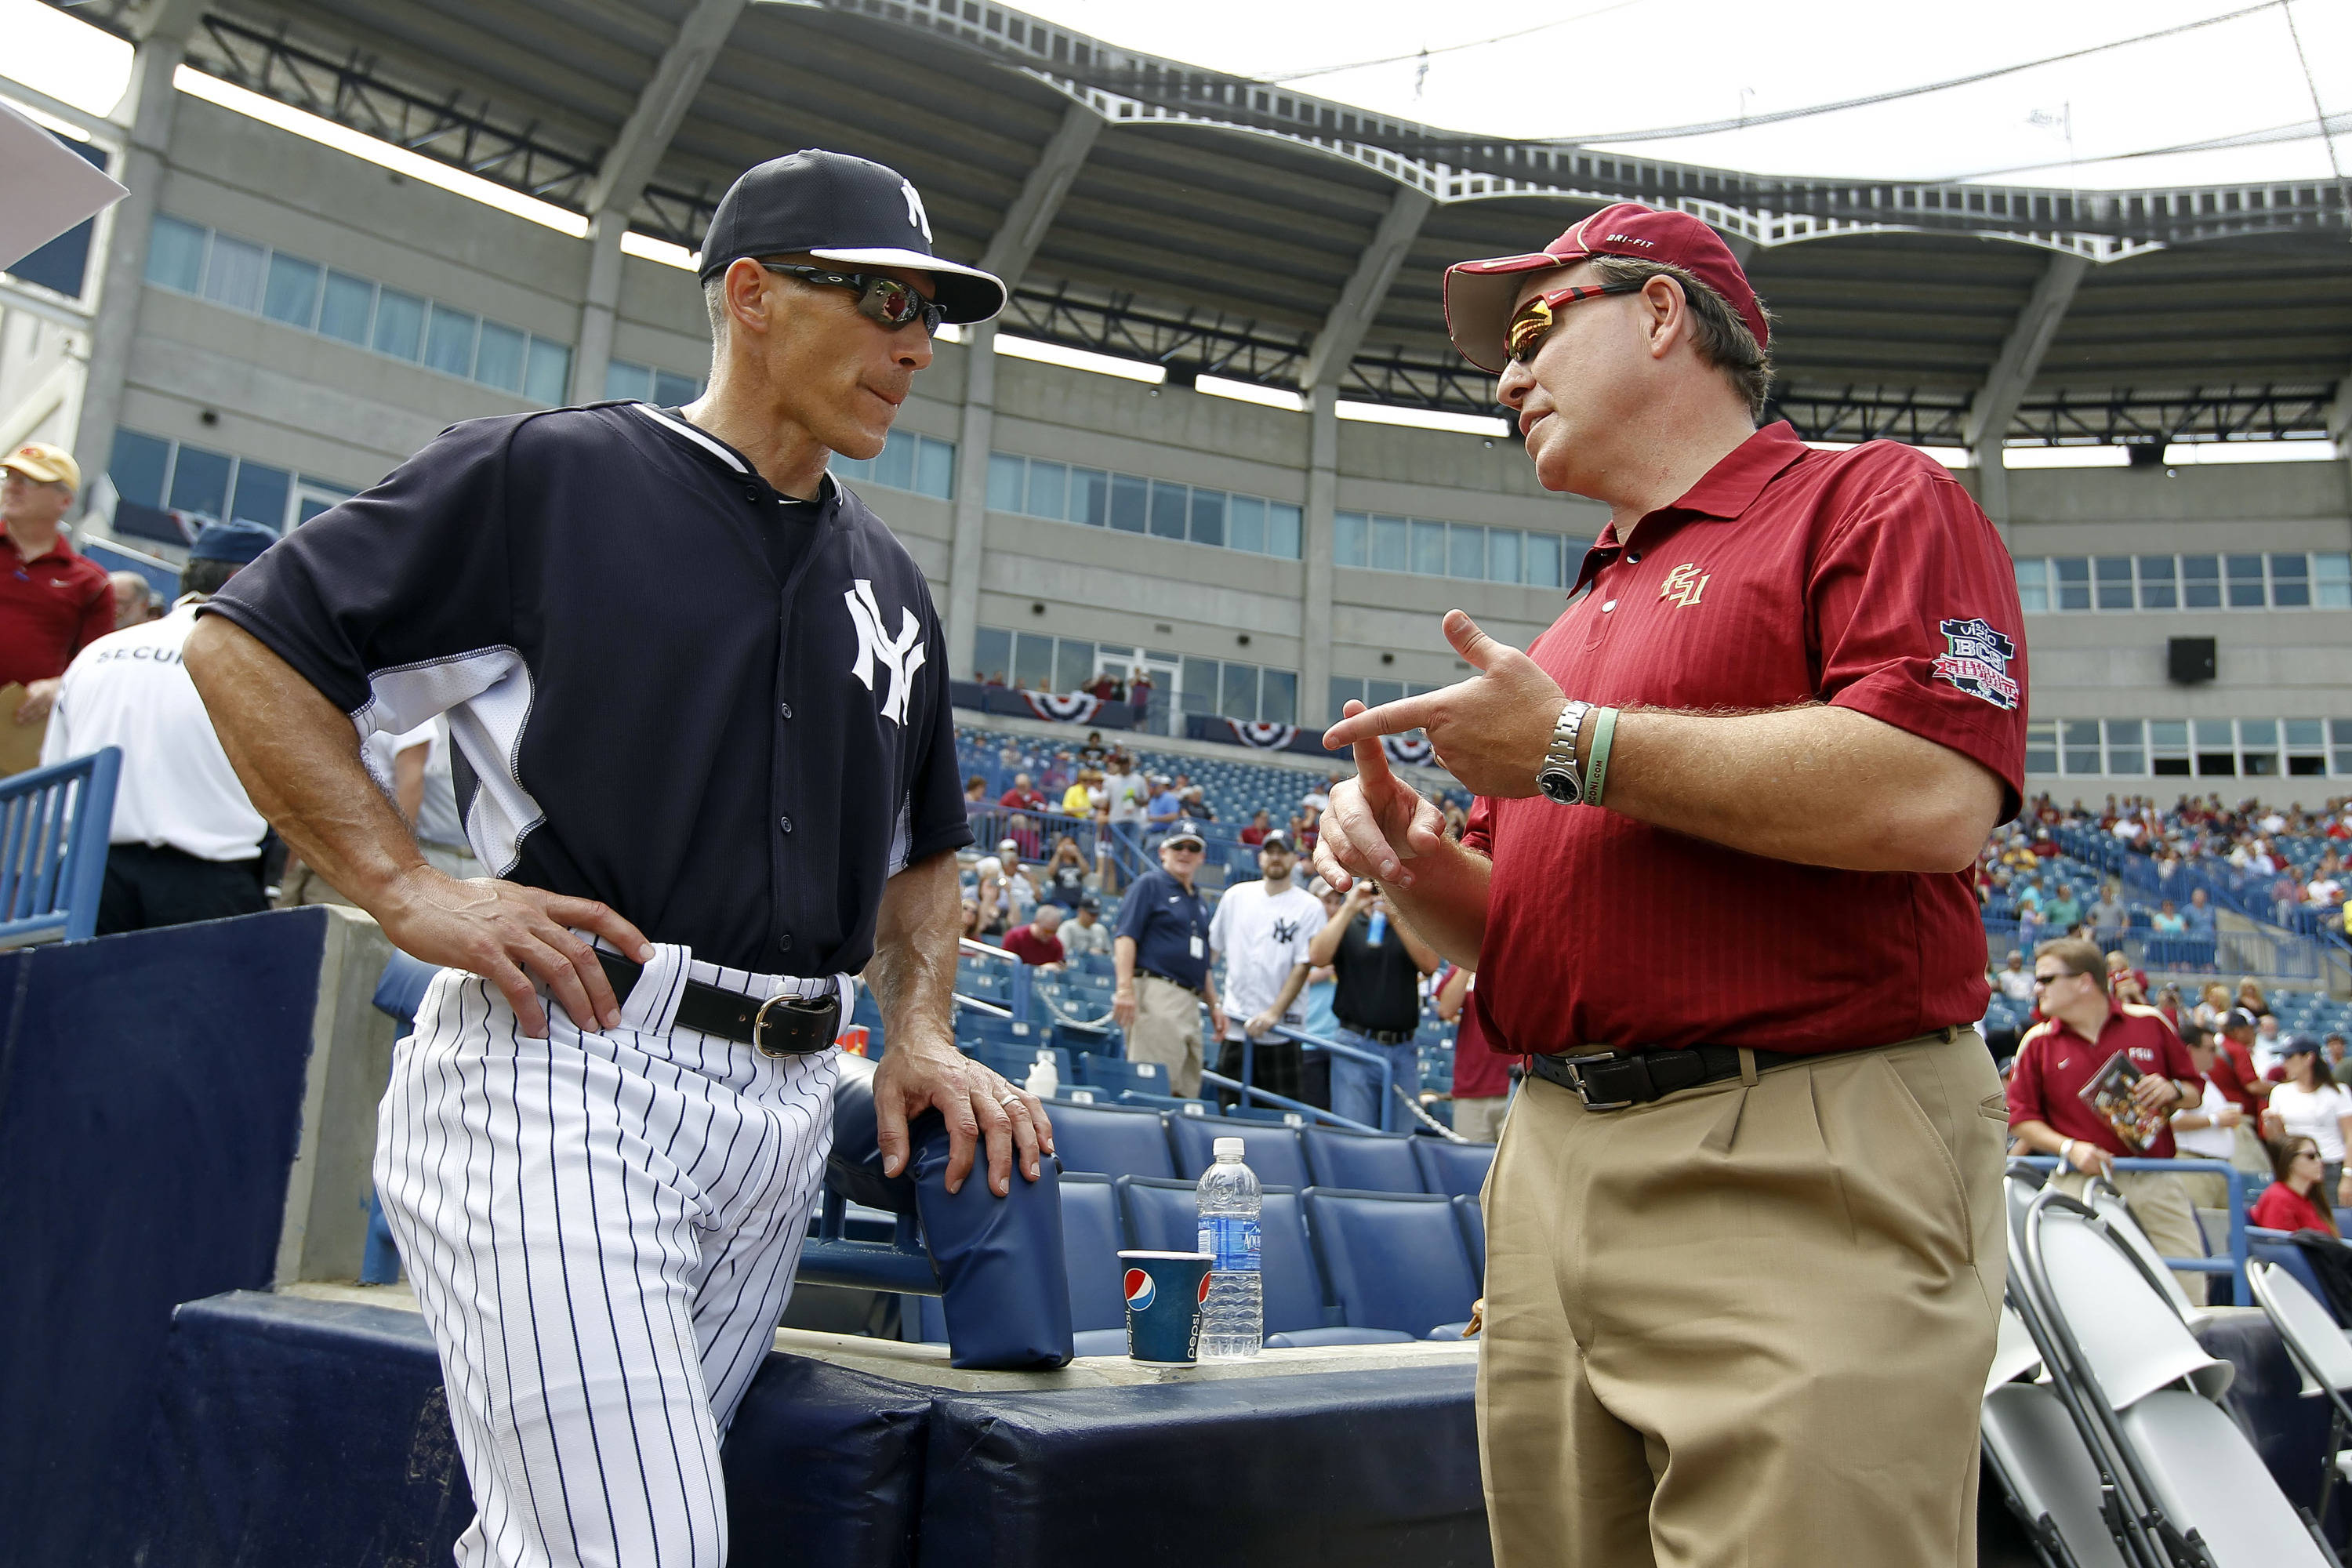 Feb 25, 2014; Tampa, FL, USA; New York Yankees manager Joe Girardi (28) and Florida State Seminoles football head coach Jimbo Fisher talk before the game at George M. Steinbrenner Field. Mandatory Credit: Kim Klement-USA TODAY Sports